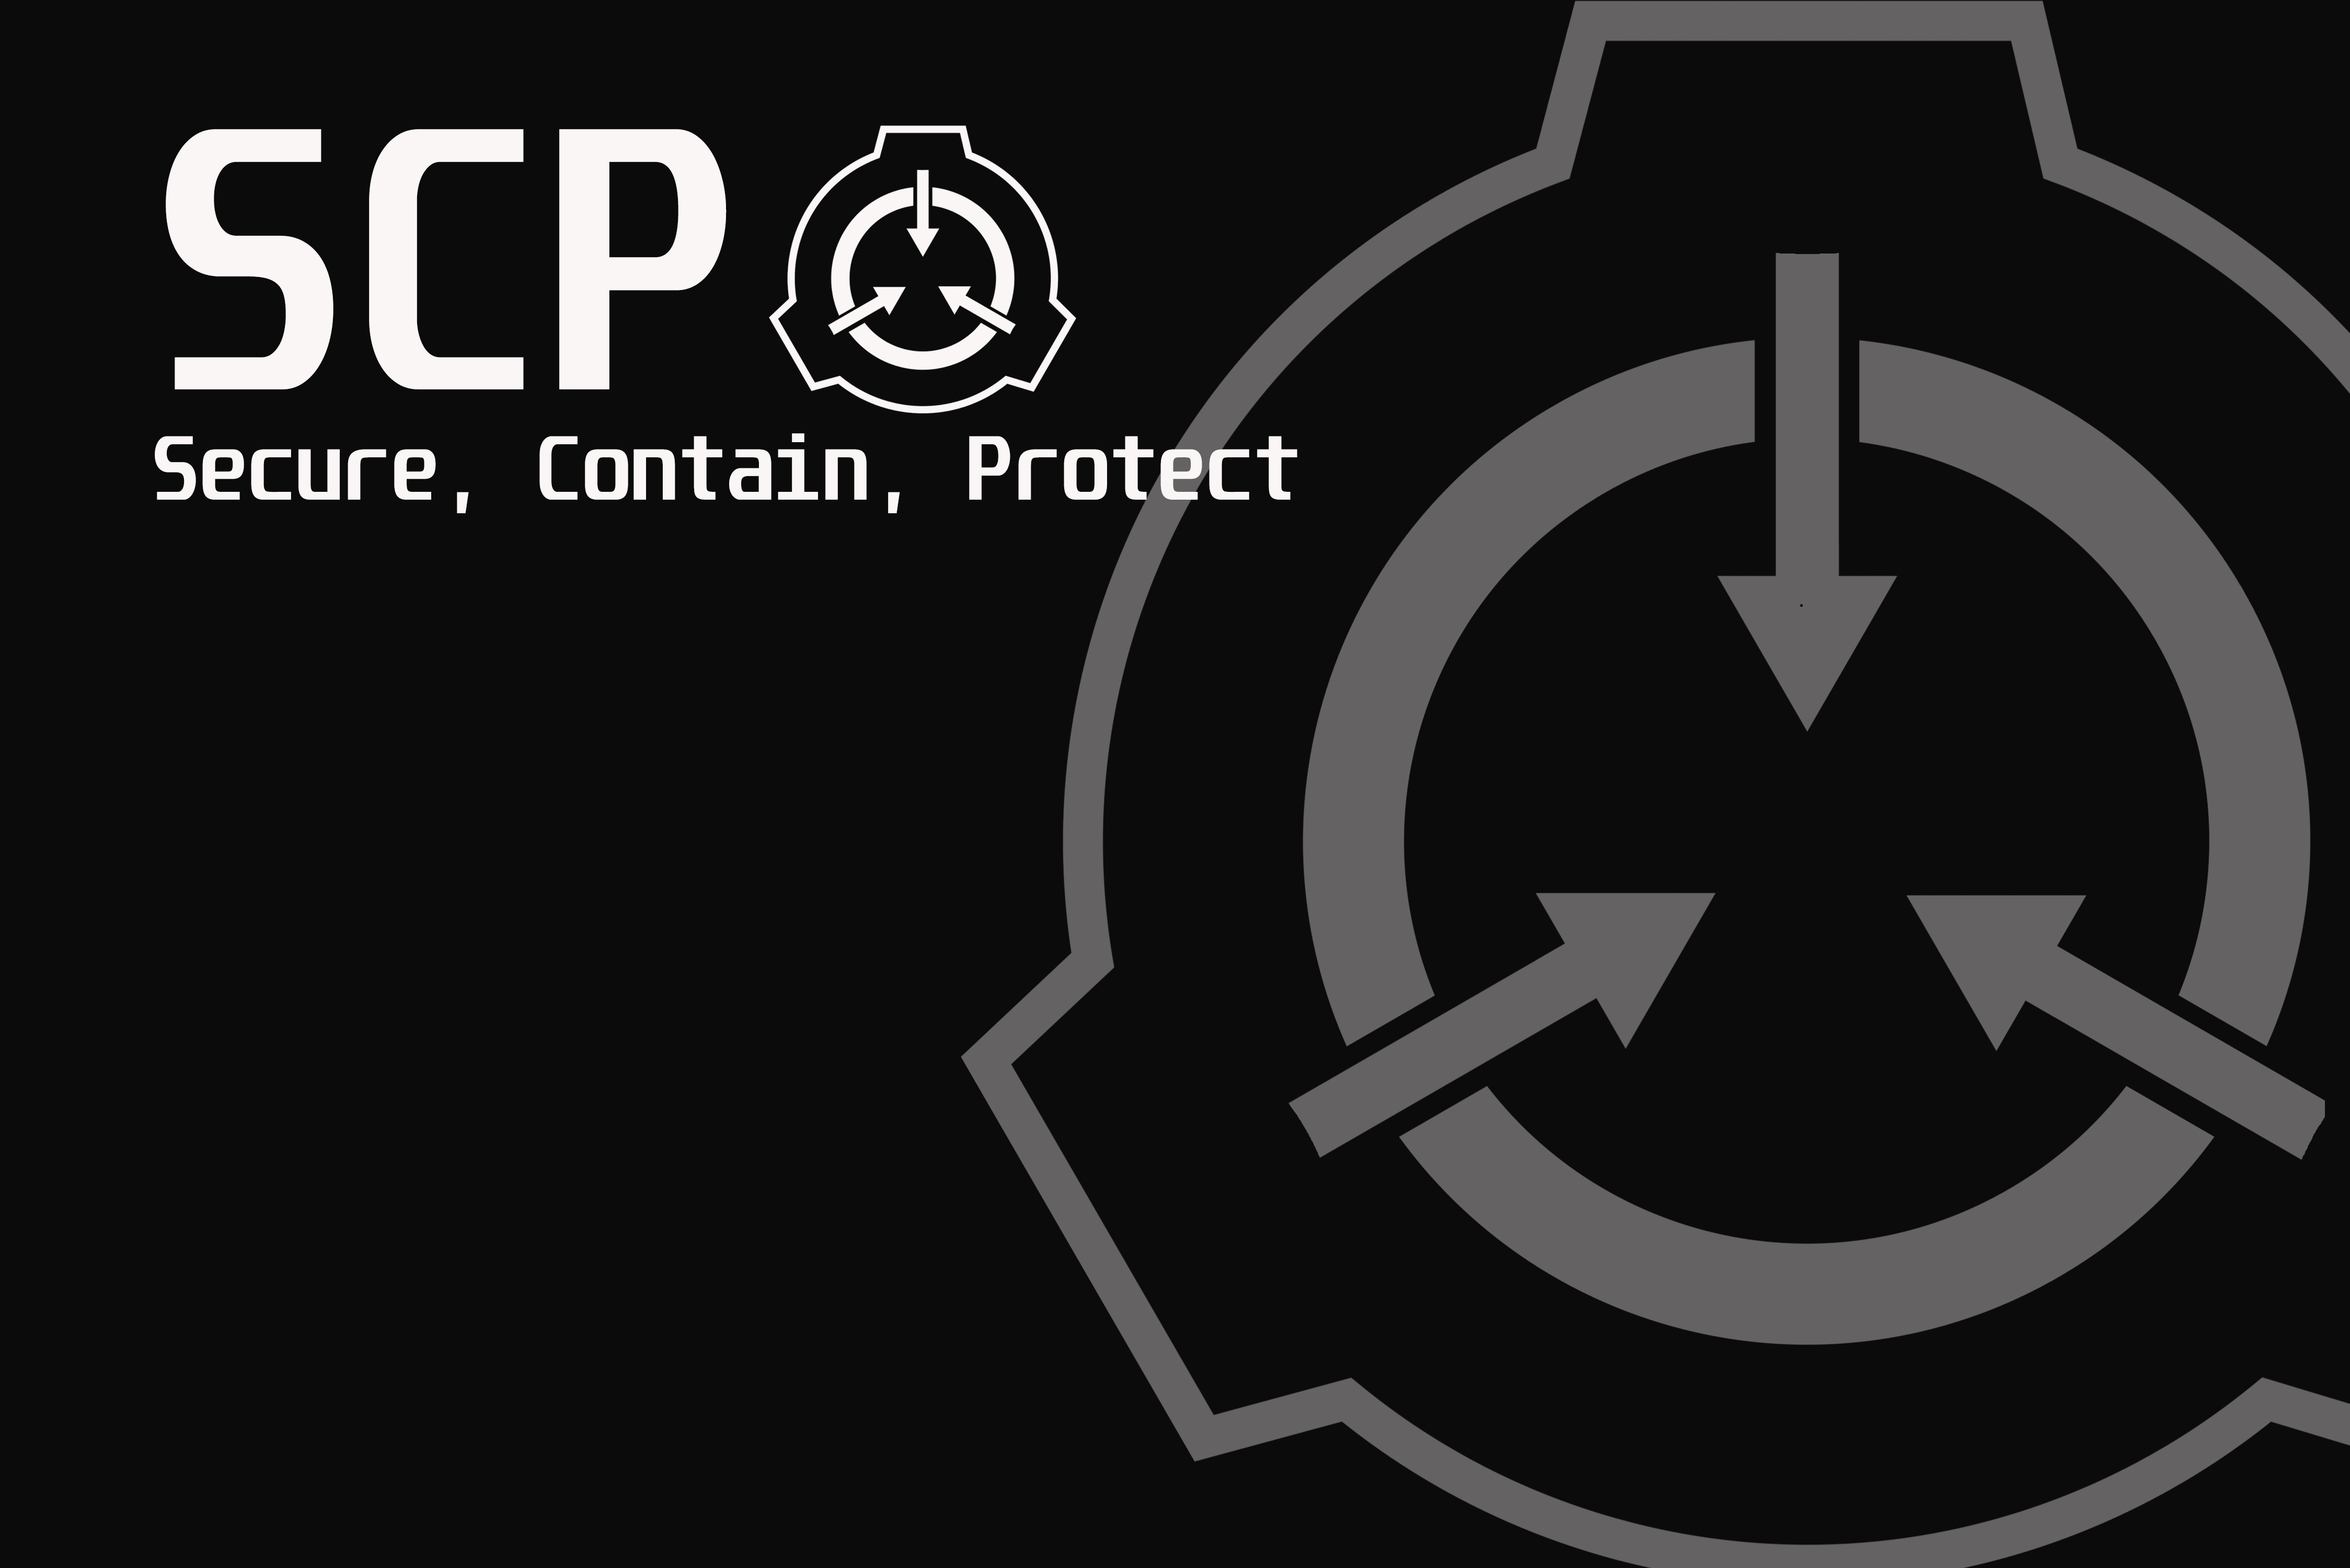 SCP-Ccard-Black-02.png